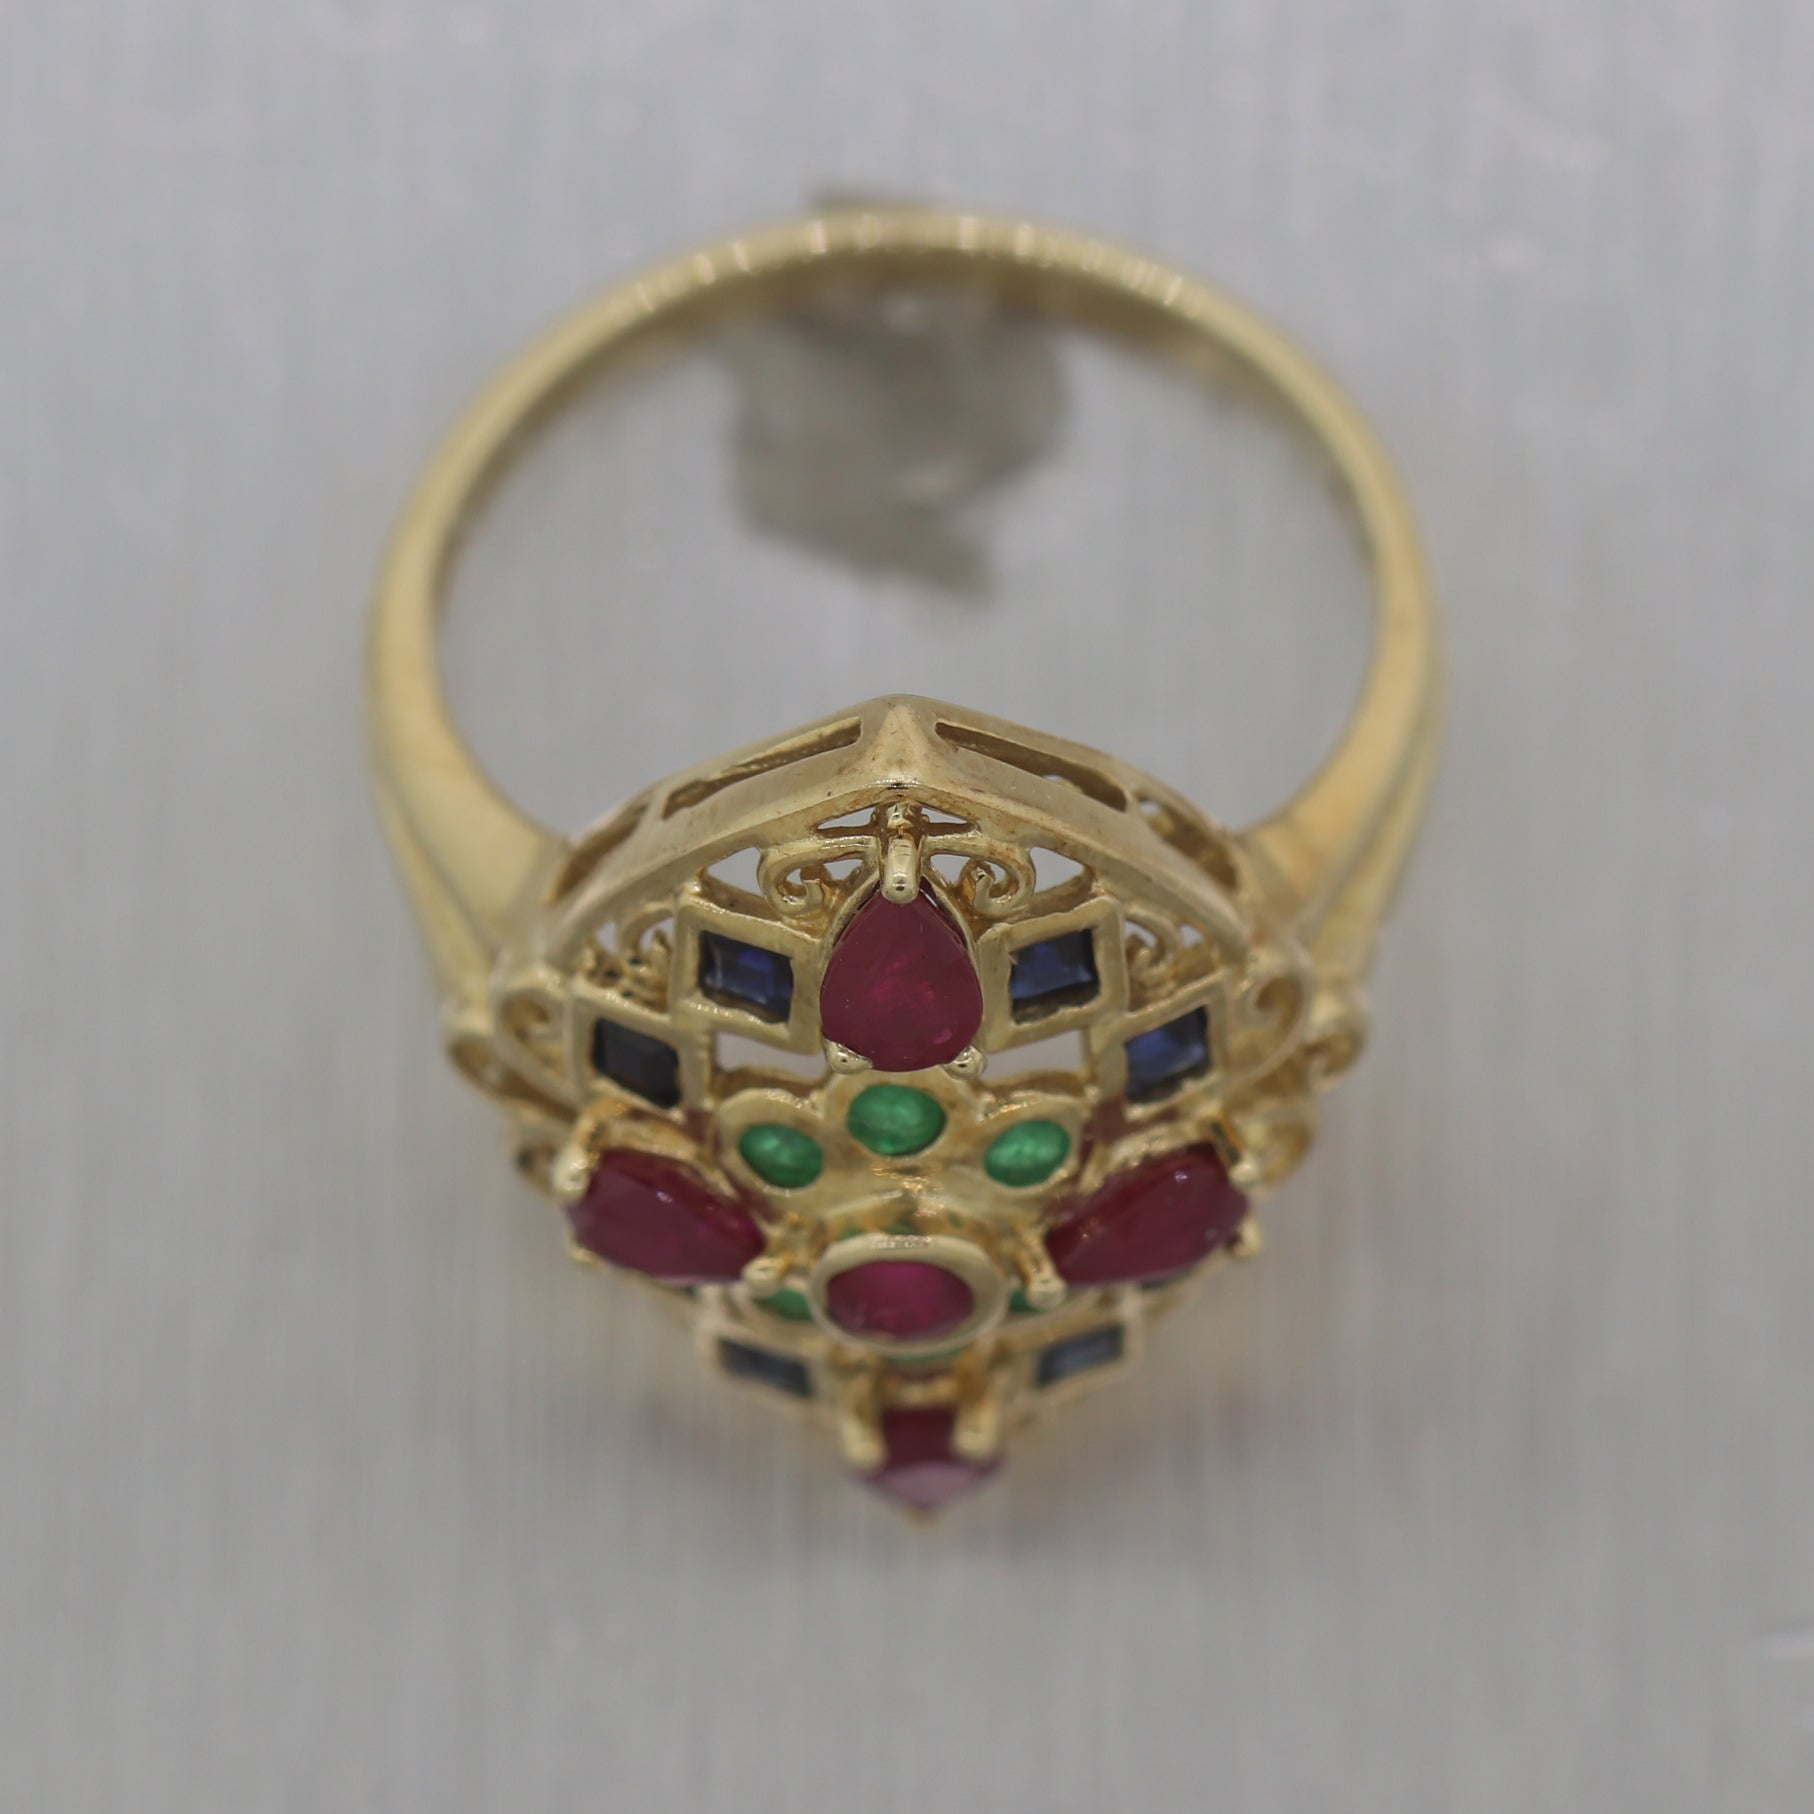 Vintage Estate 10k Yellow Gold Sapphire Emerald & Ruby Ring